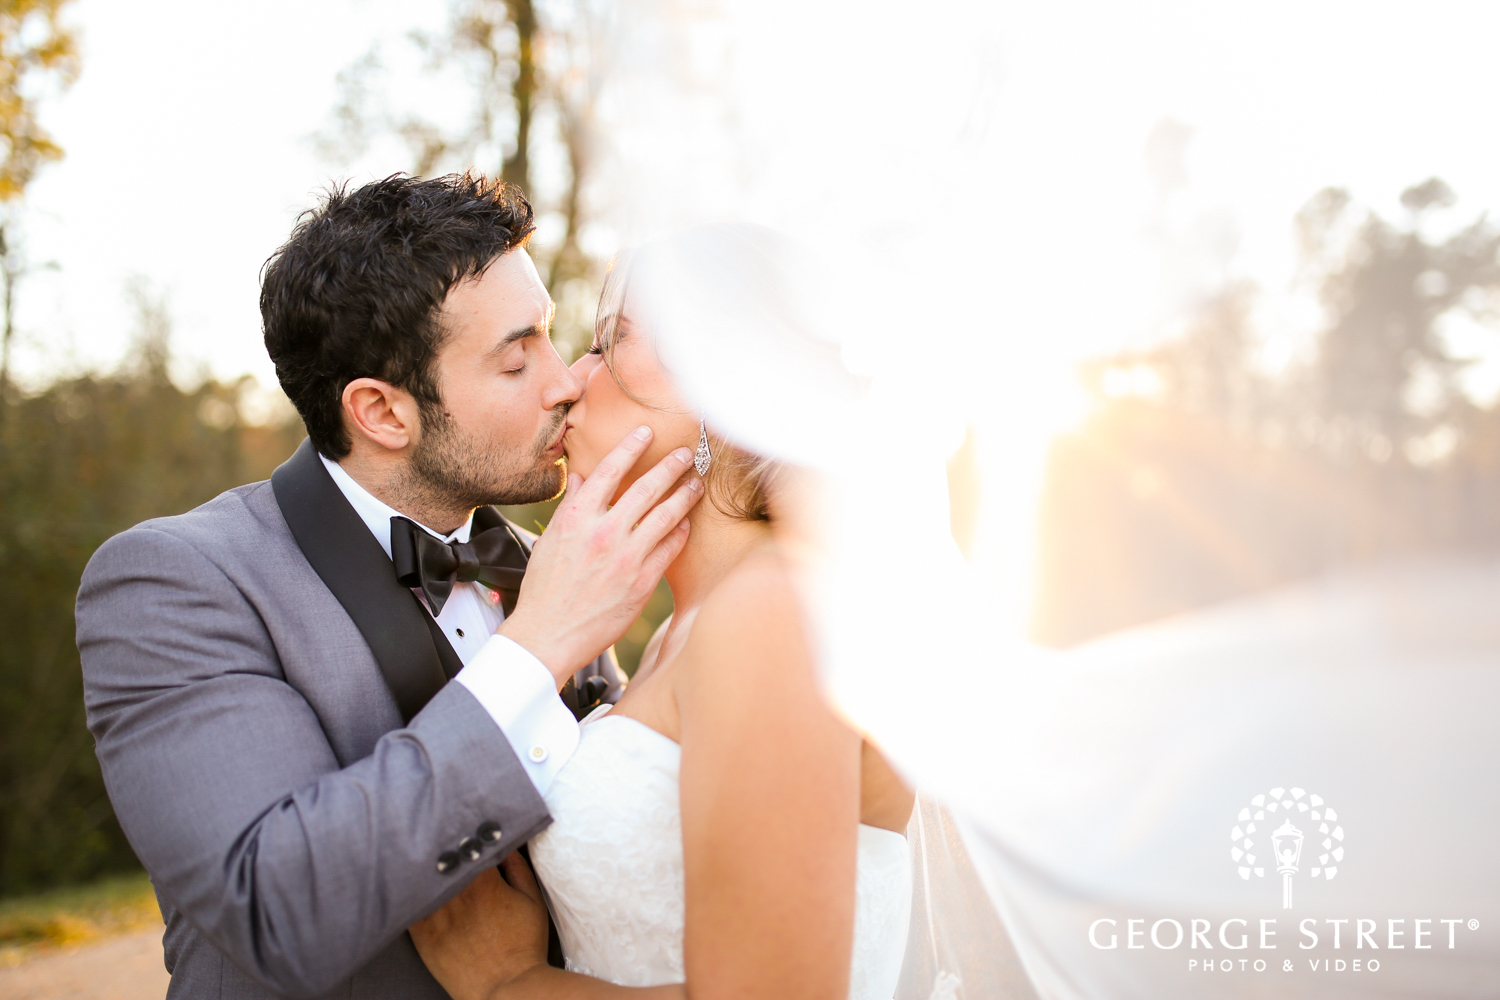 11 Swoon Worthy Wedding Photos